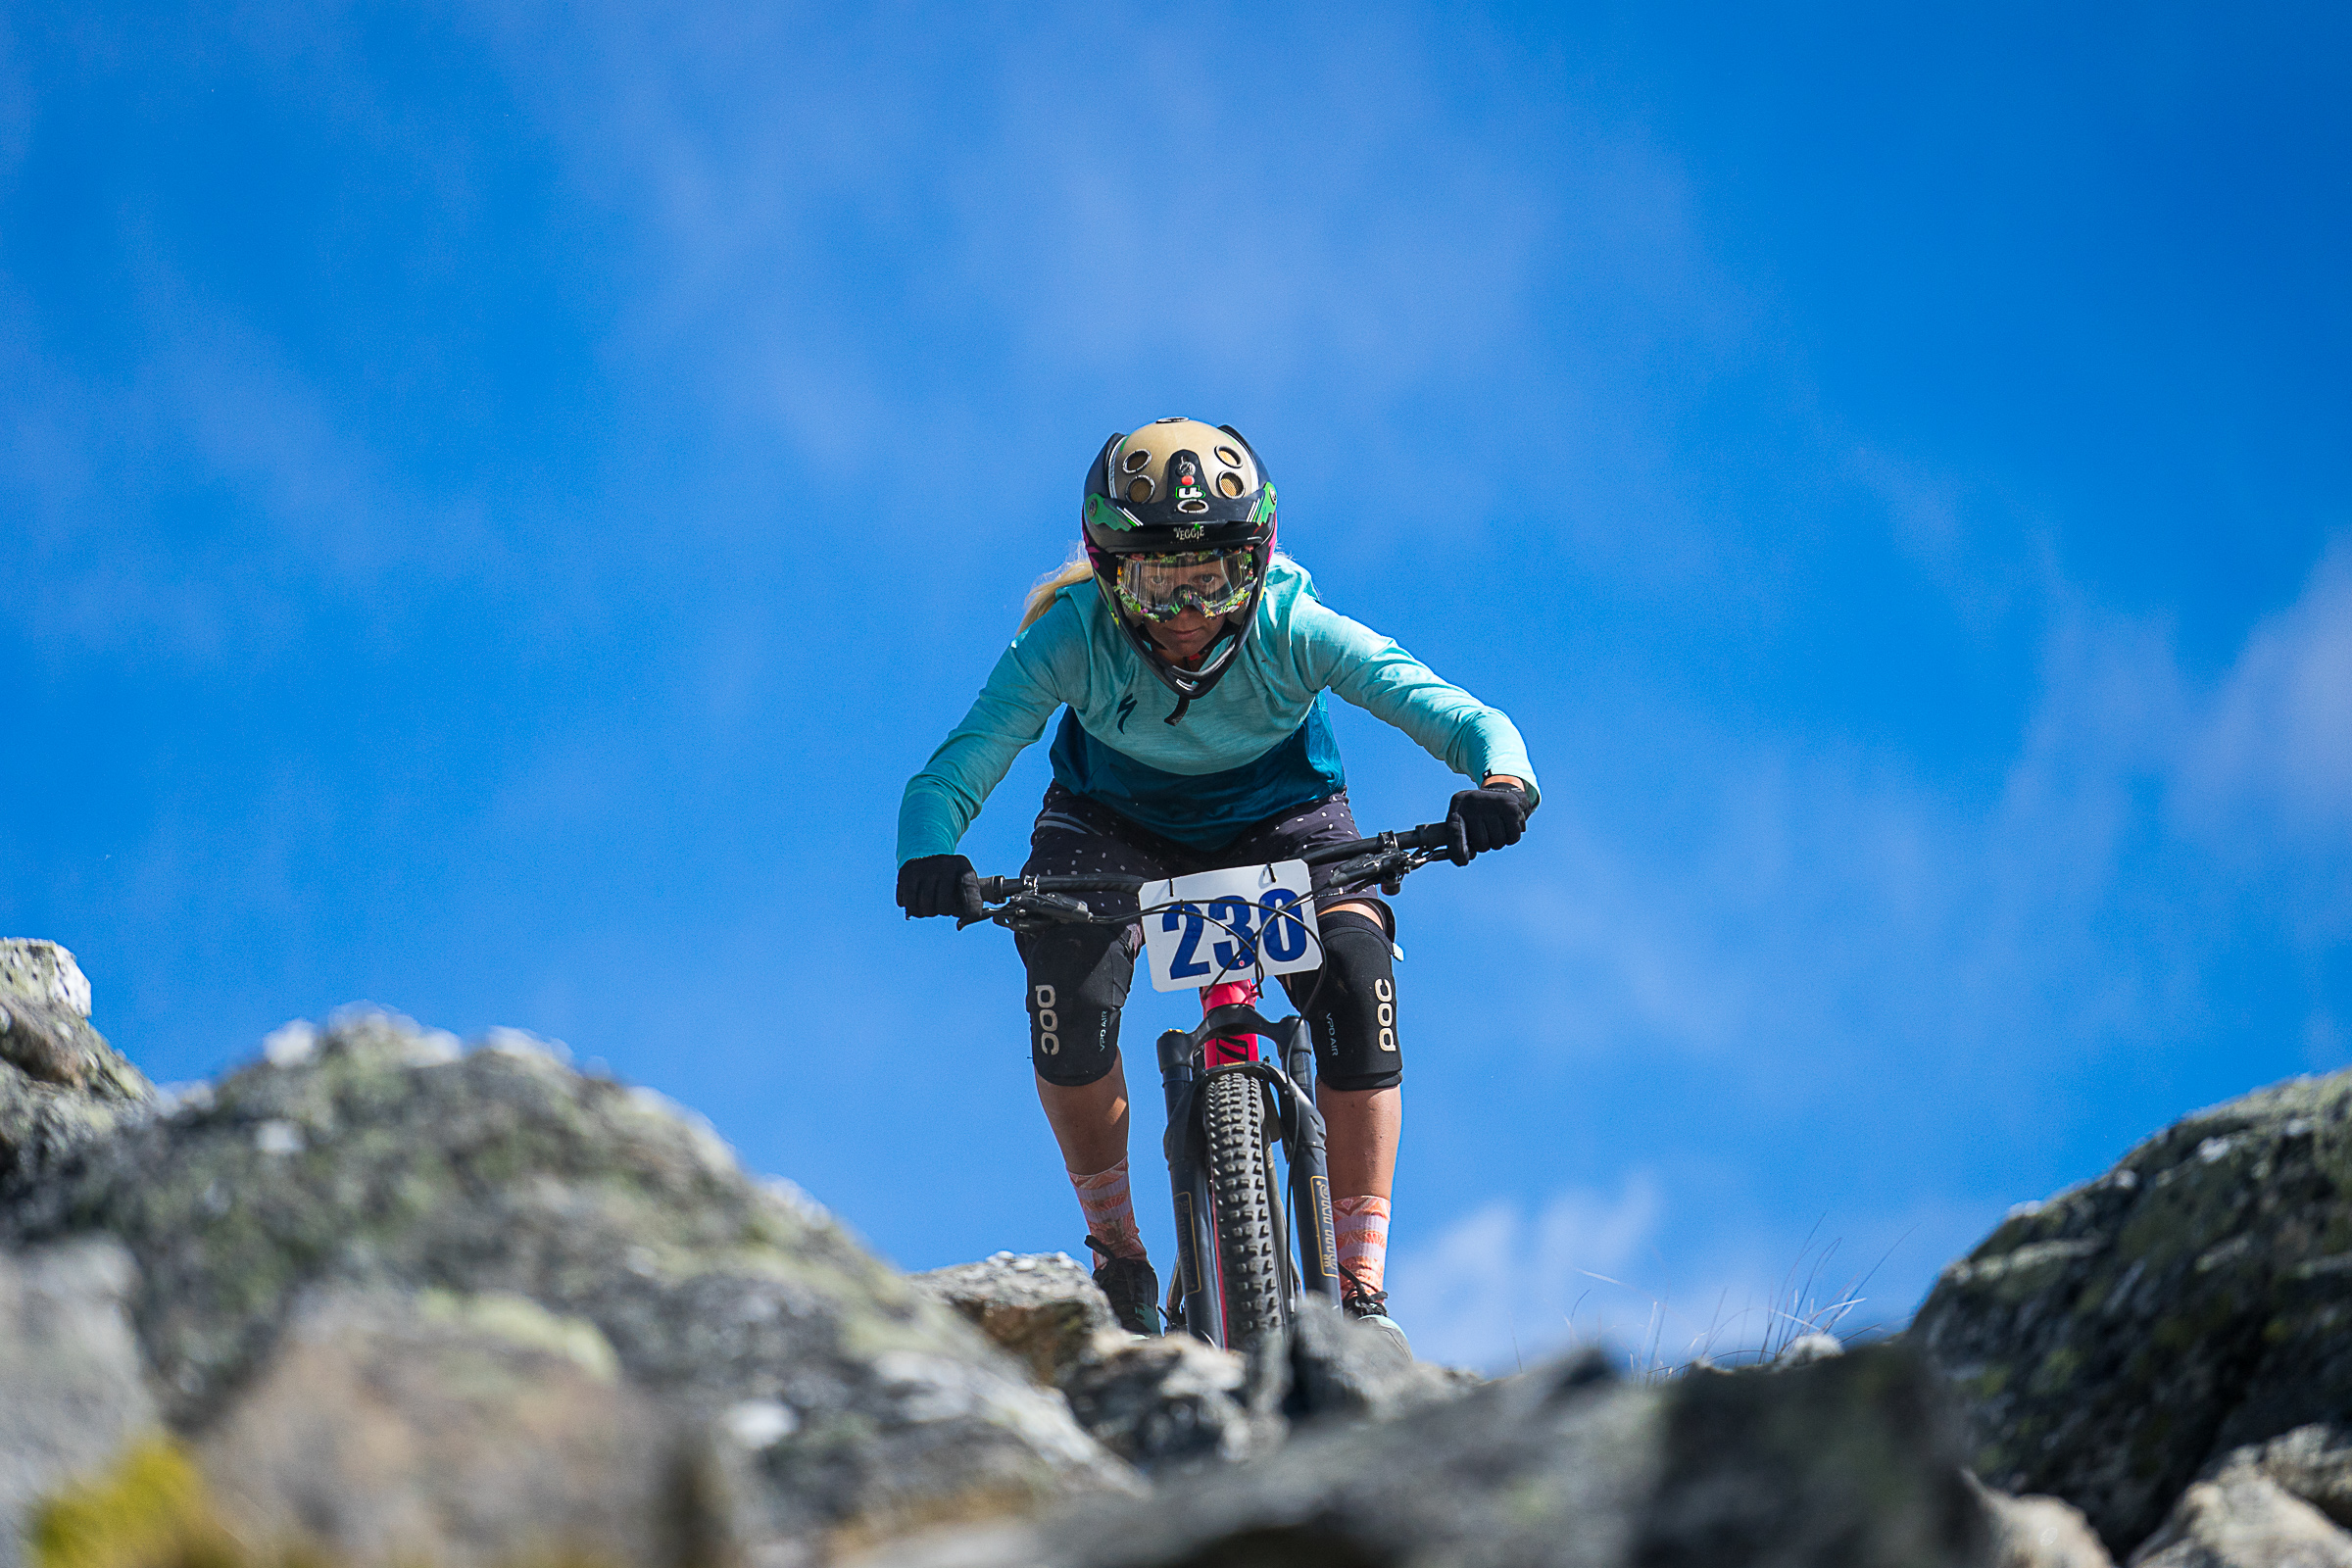 Eva showing what a trail bike can do